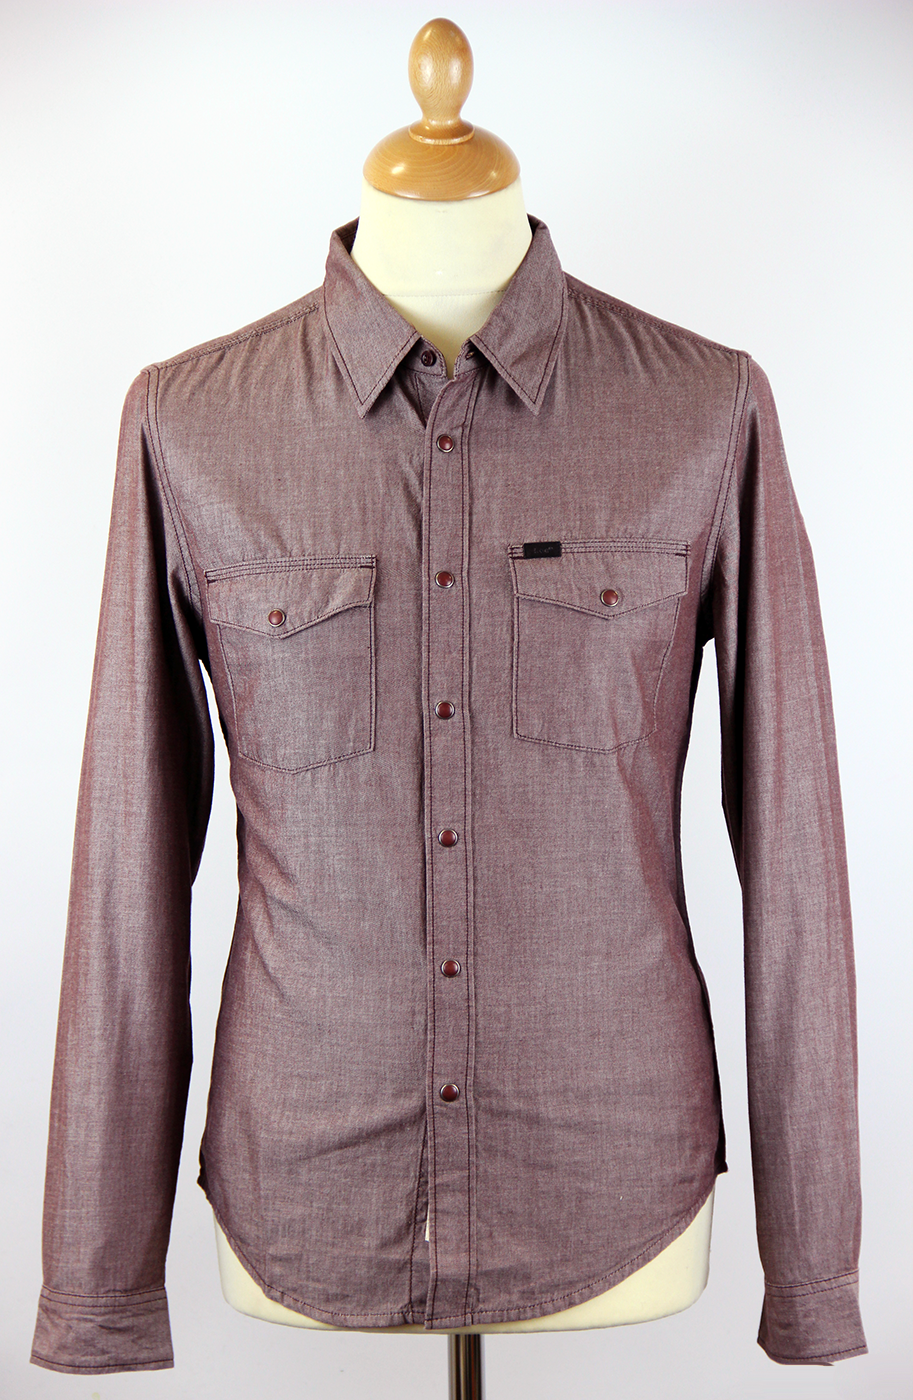 LEE Slim Fit Retro Mod Western Chambray Shirt (GR)